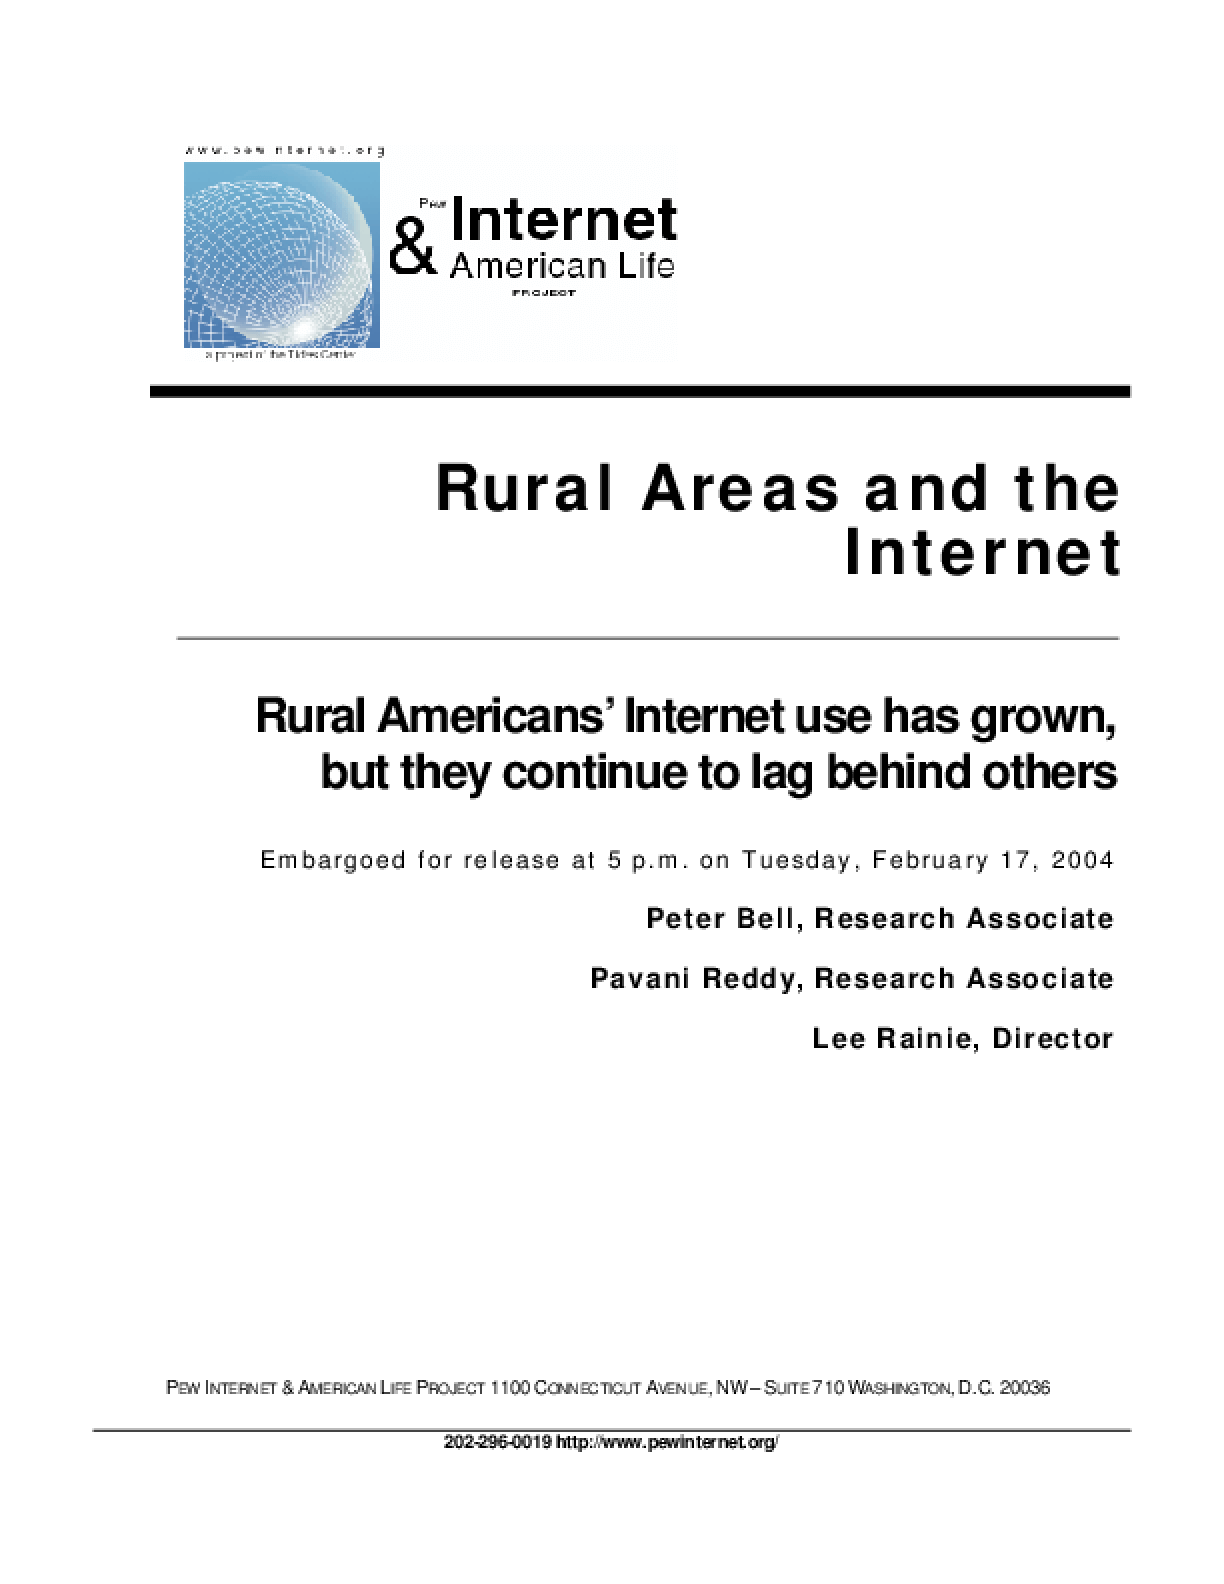 Rural Areas and the Internet